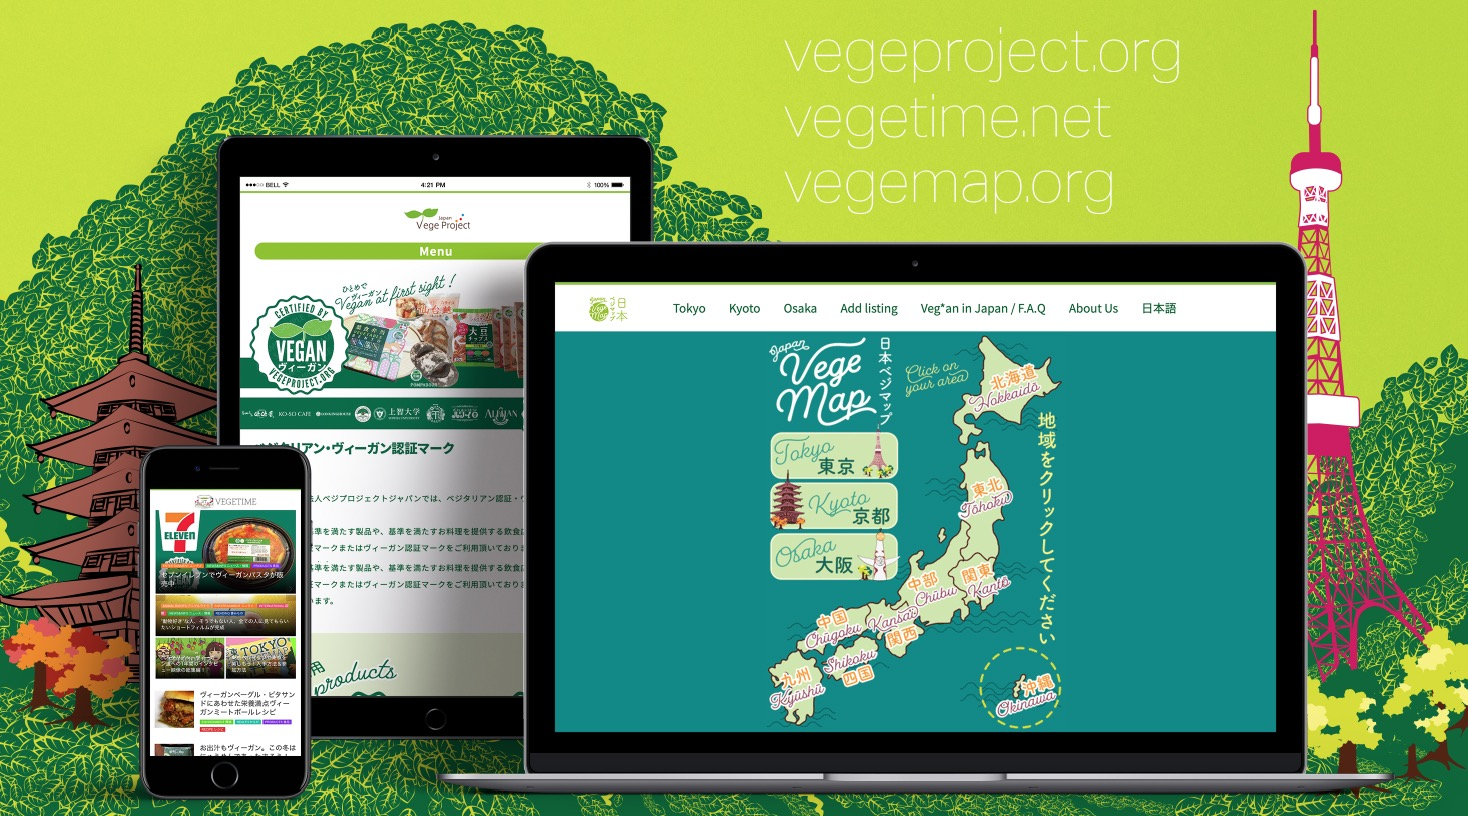 vegeproject websites